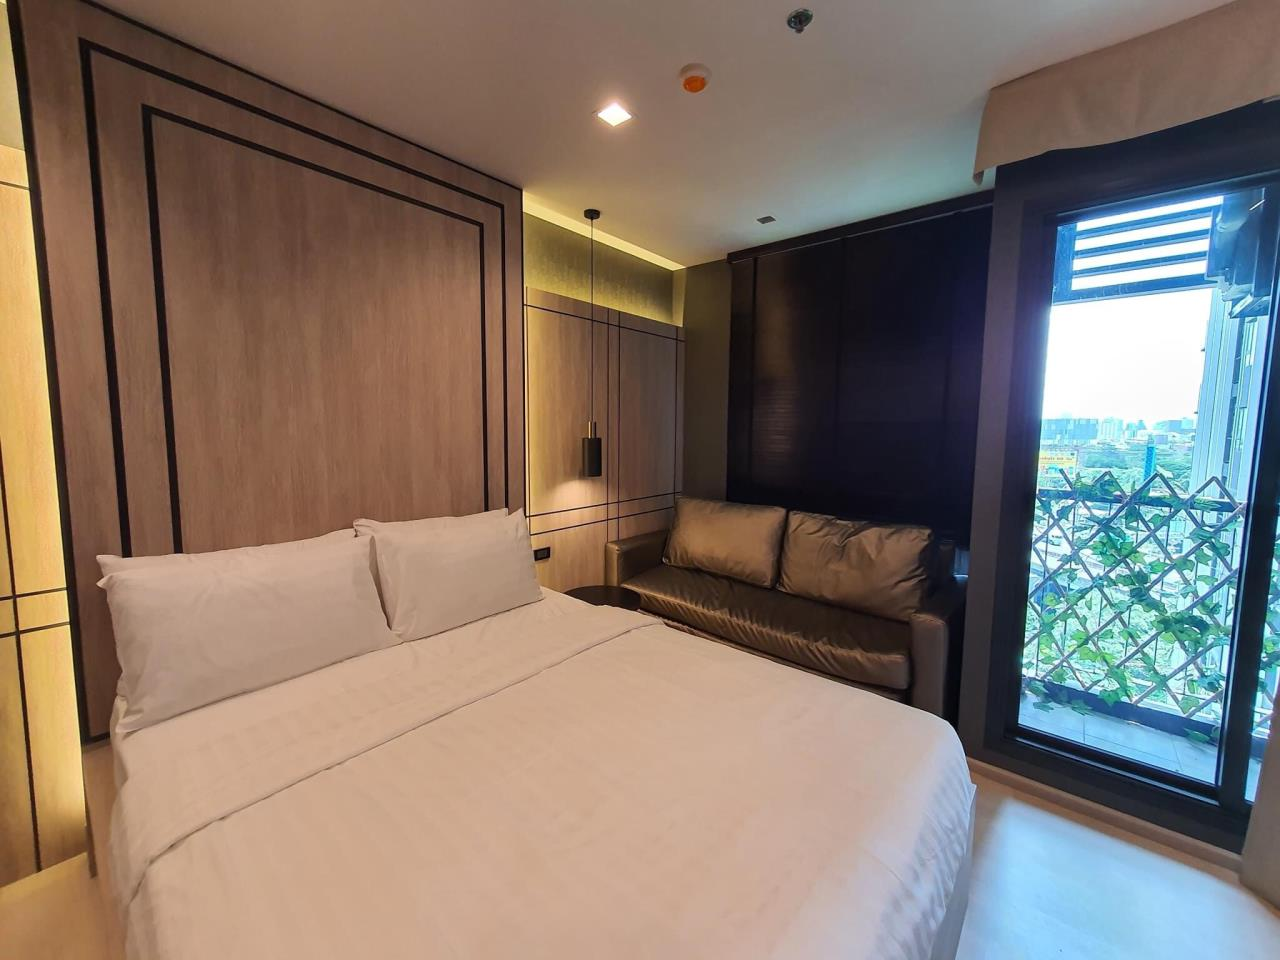 Blueocean property Agency's Condo For Rent – Life @ Wireless 11